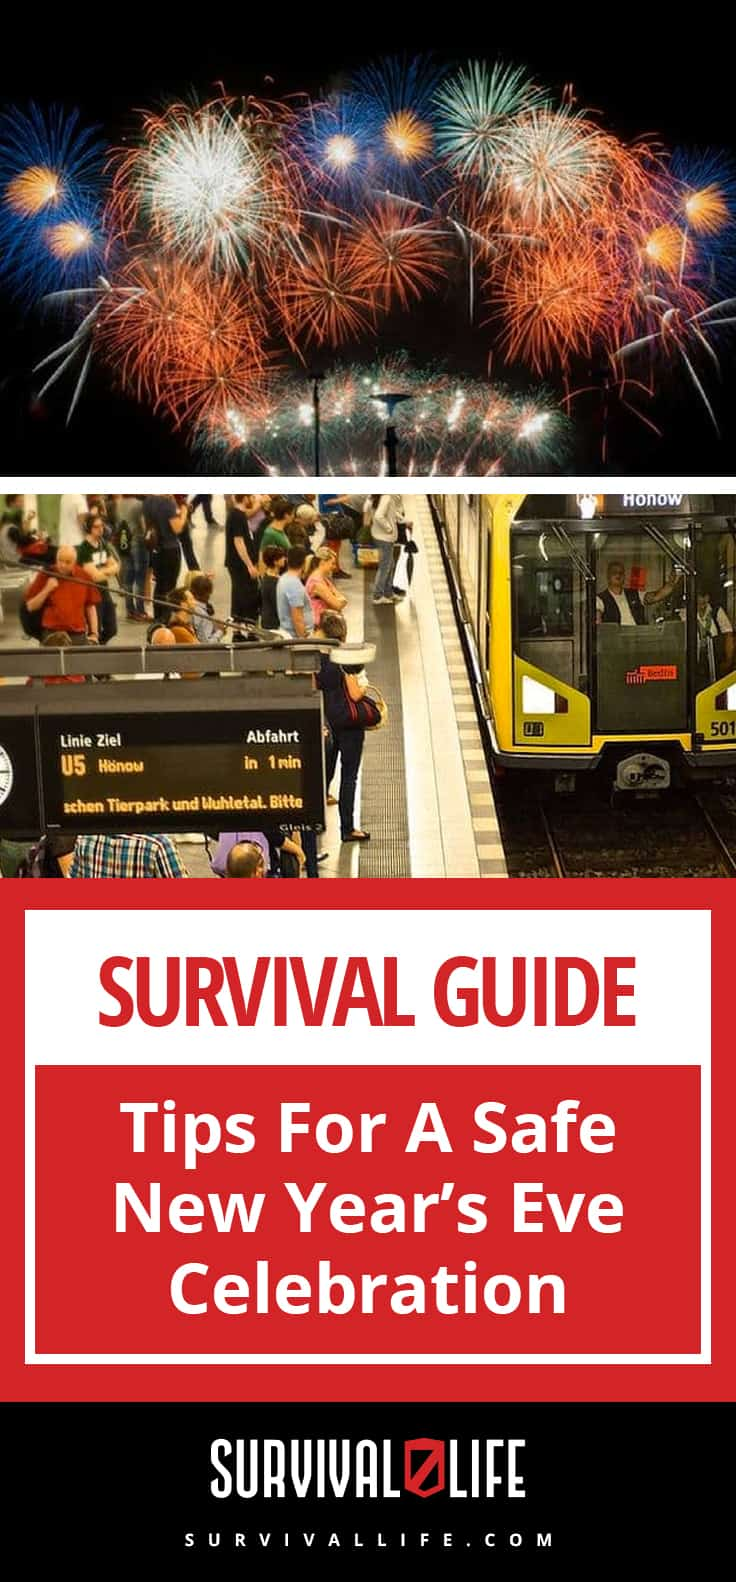 Survival Guide | Tips For A Safe New Year's Eve Celebration